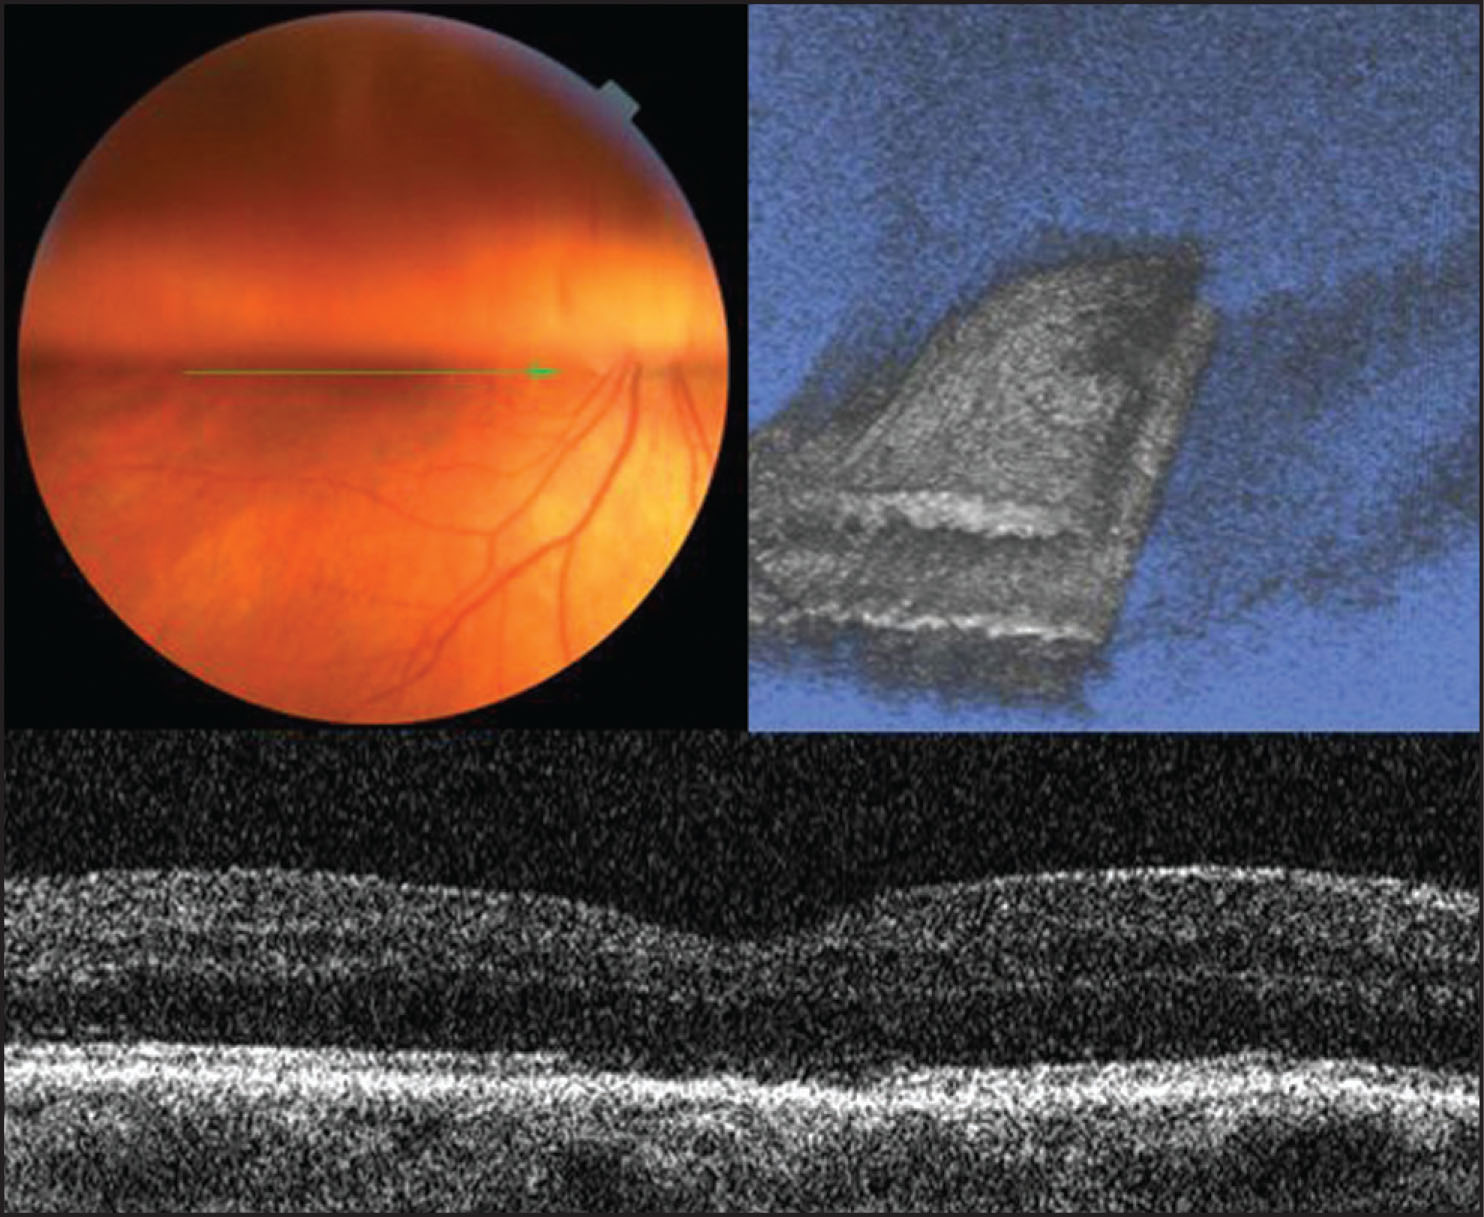 Three-Dimensional Fourier-Domain Optical Coherence Tomography (FD-OCT) of a Patient 2 Weeks Following Surgery with a 50% Vitreous Cavity Fill of SF6 Gas. (Upper Left) Arrow Indicates the Plane of Scanning. The Fovea Is not Visualized on Either Biomicroscopy or Fundus Photography Due to Masking by the Lower Edge of the Gas Bubble. (Upper Right) Three-Dimensional Scan of 50% Gas Effects on Interferometry Image. Lack of Intraretinal FD-OCT Signal Due to Intravitreal Gas Bubble Above the Fovea (right Side of Scan), with a Much Higher Retinal Signal Below the Bubble Anterior to the Macula (left Side of Scan). (Lower) Horizontal FD-OCT Demonstrates Anatomical Hole Closure and There Are No Reflectivity Changes Associated with Gas–Inner Retinal Tamponade.